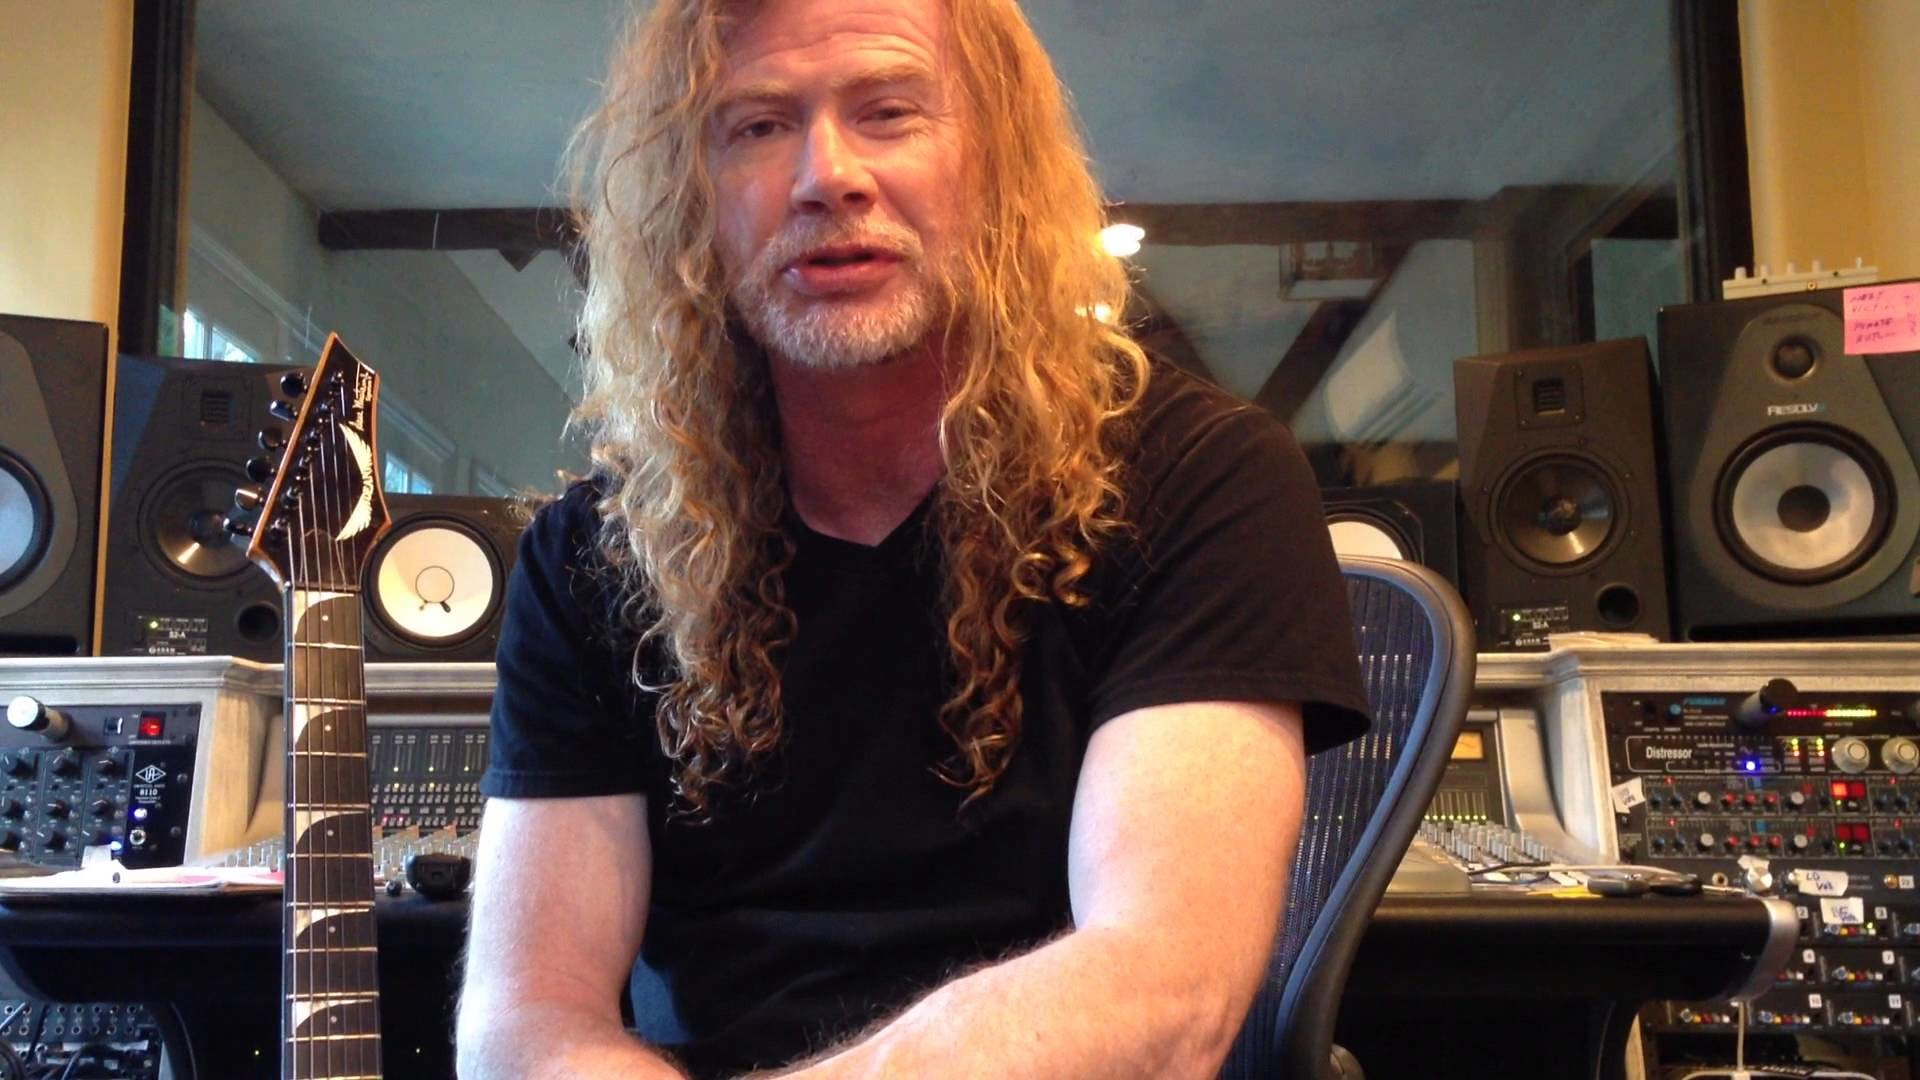 Res: 1920x1080, Dave Mustaine Israeli Show Video Trailer